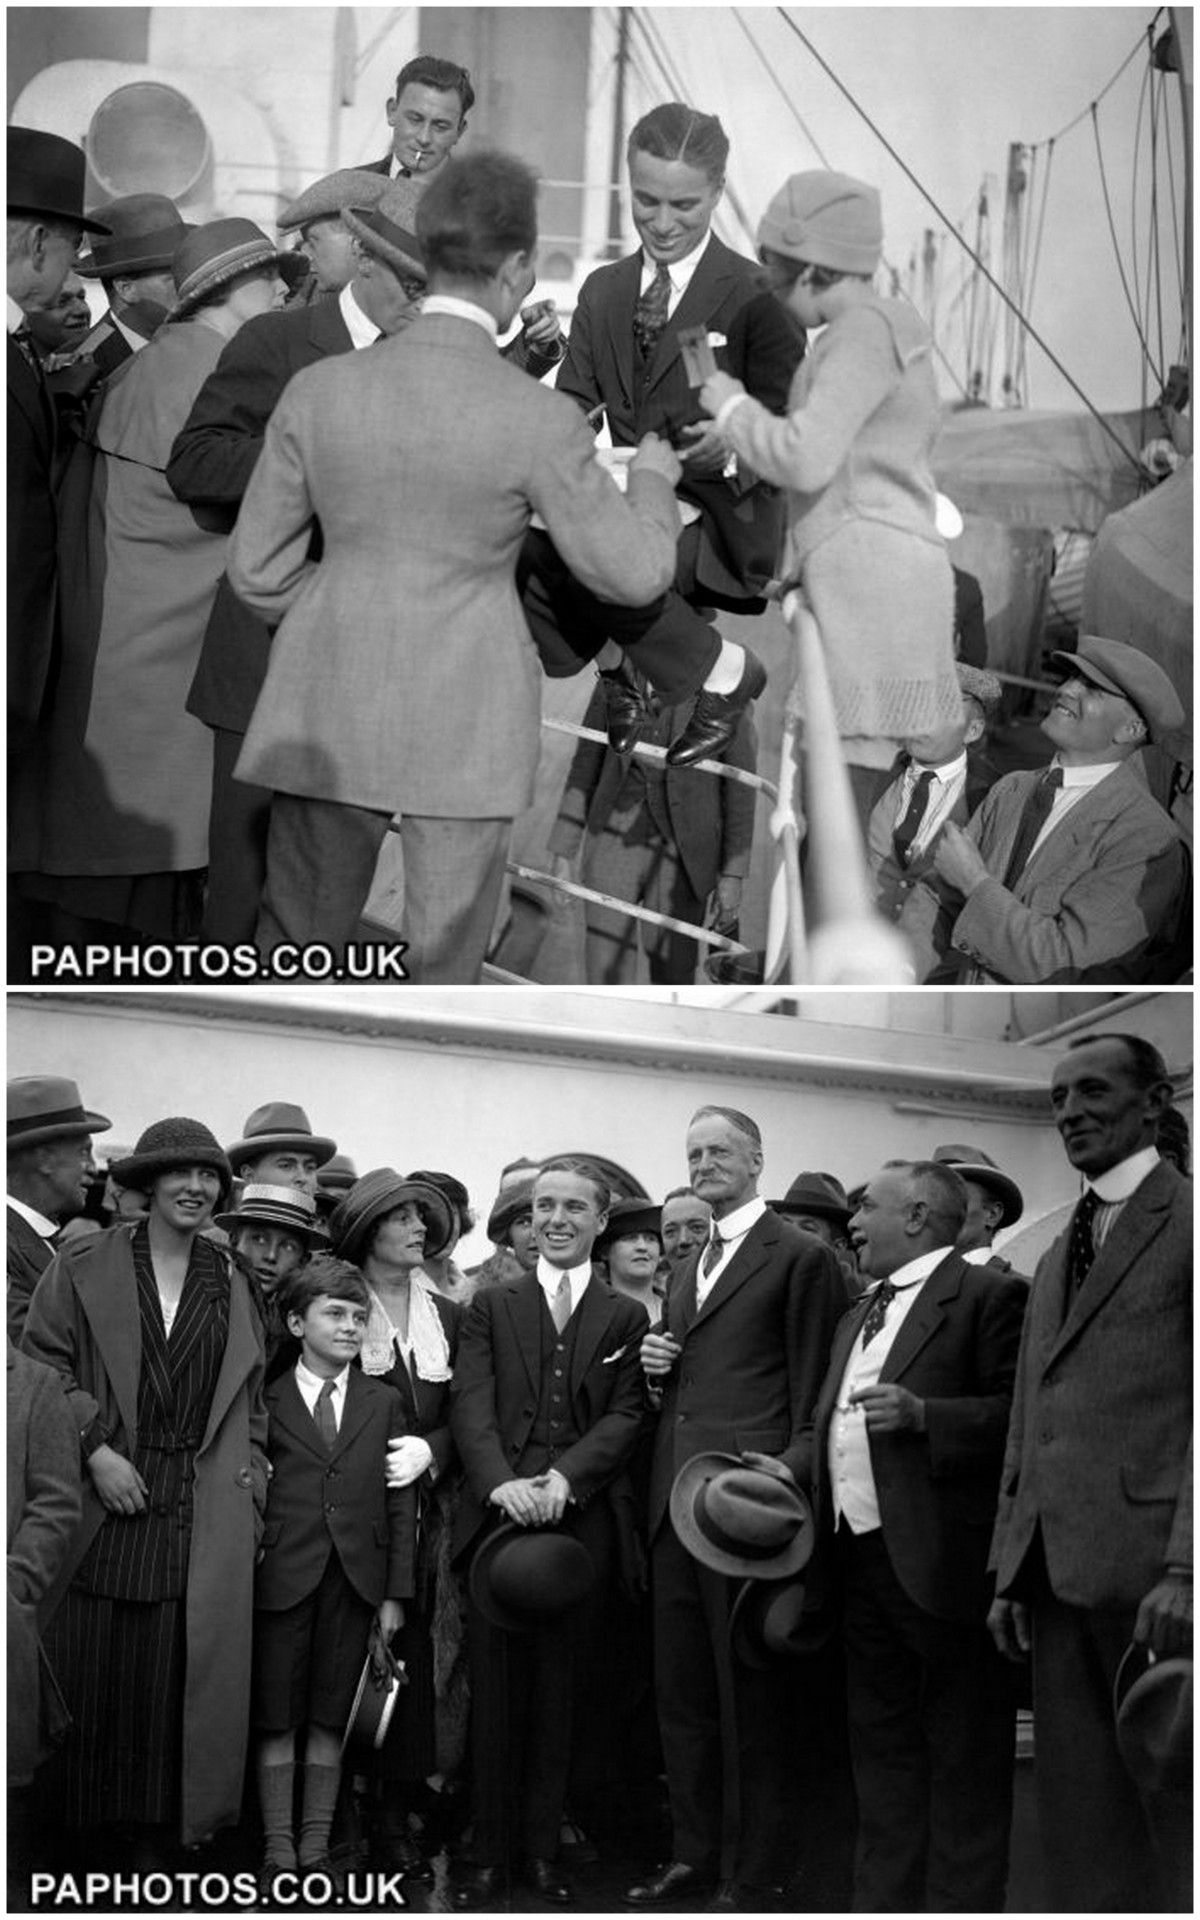 September 1921 - Charlie Chaplin arrives in Southampton, aboard the RMS Olympic (sister ship of the Titanic). He had not seen England's shores since October 1912.